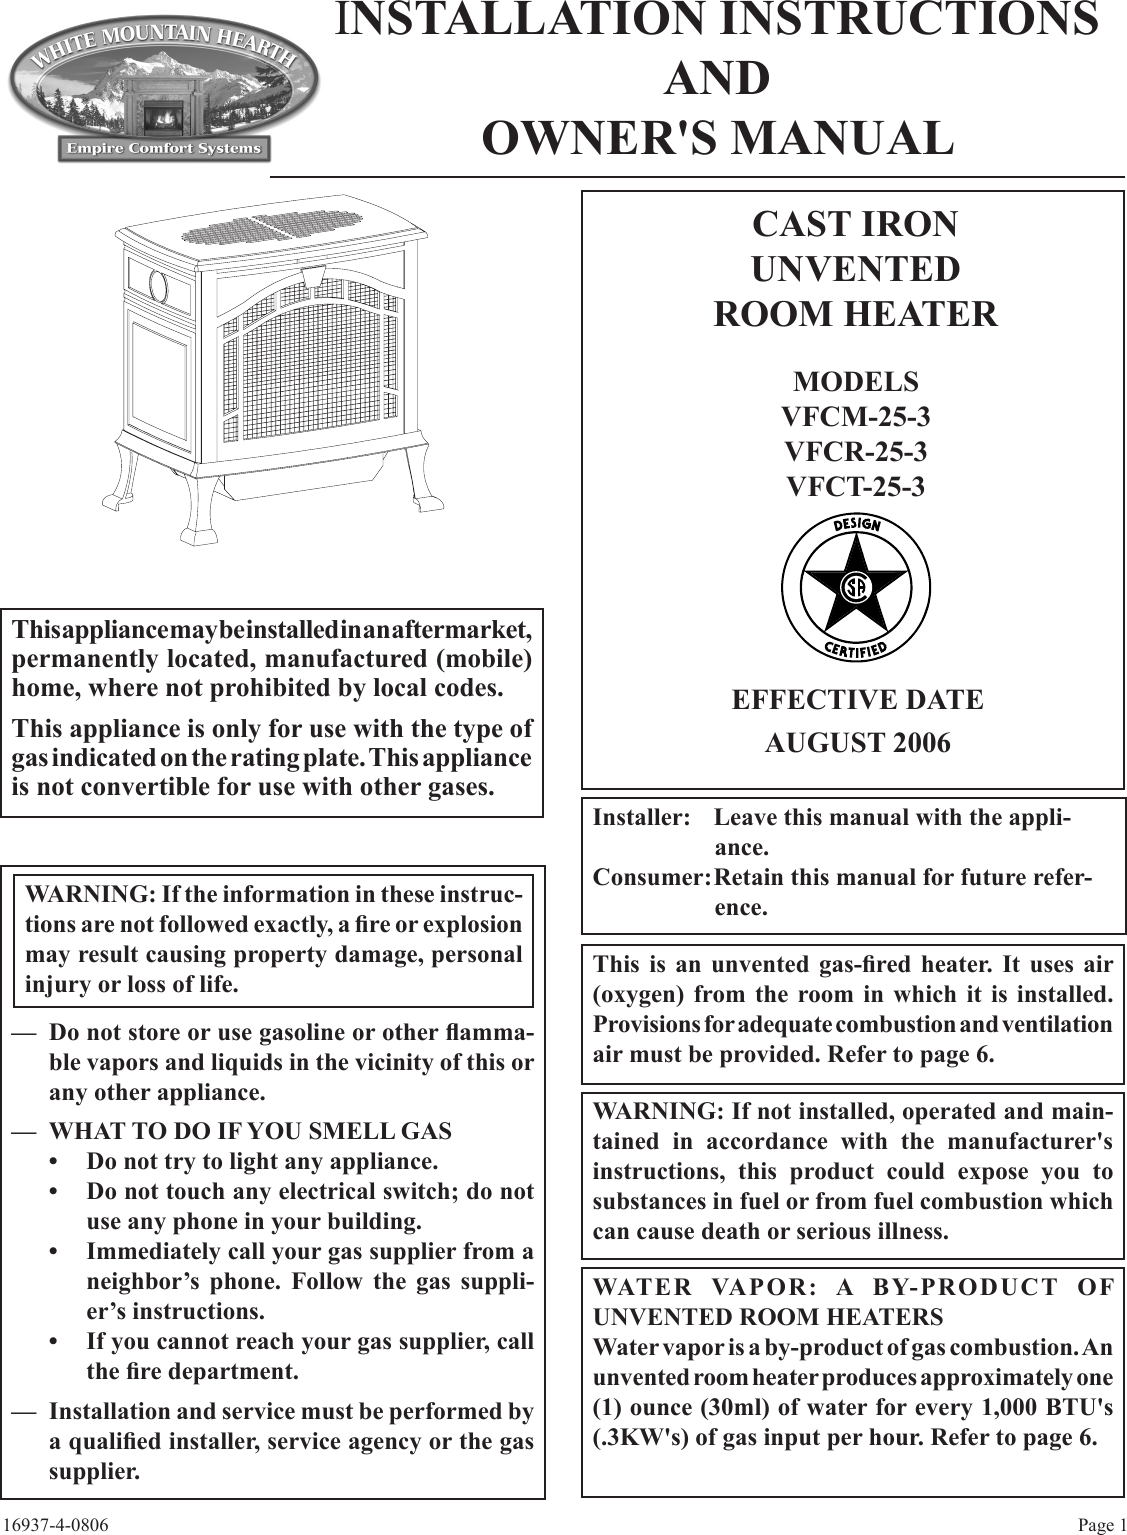 Empire Comfort Systems Vfcm 25 3 Vfcr Users Manual 16937 4 0806 Do Wall Heater Thermostat Wiring No Release Until Further Notice Cast Iron Unvented Room